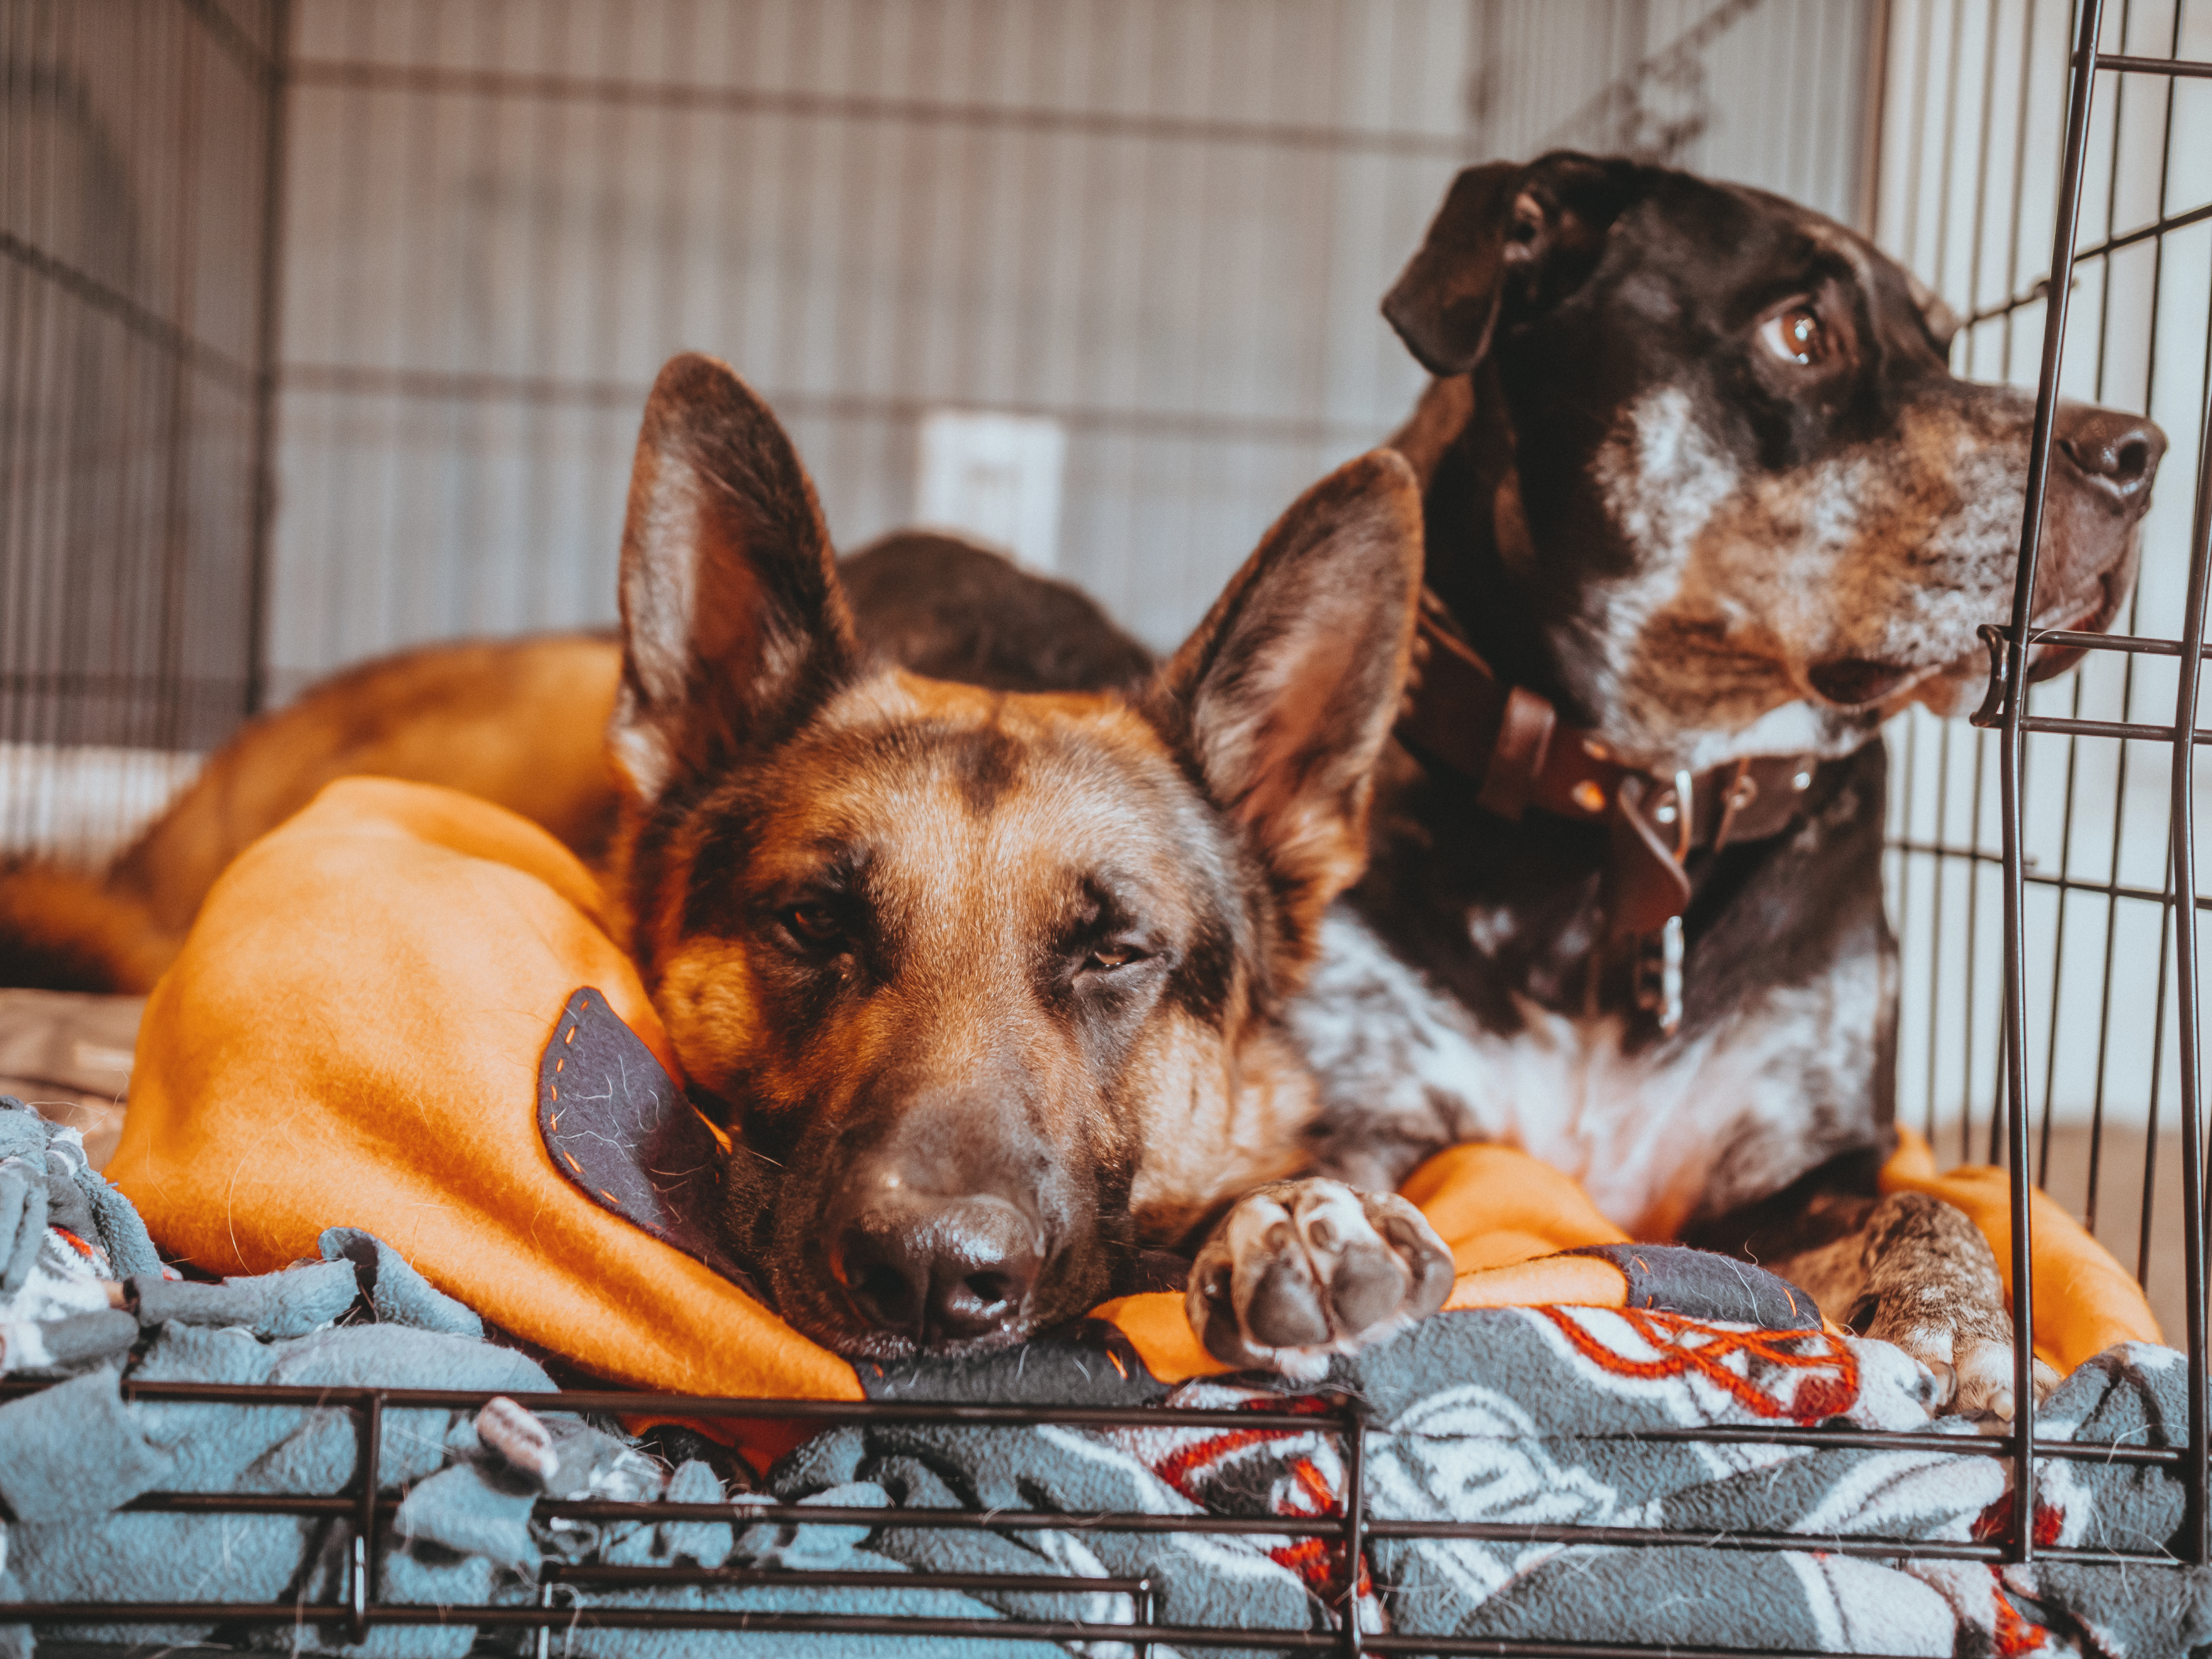 two dogs in a dog crate with blankets